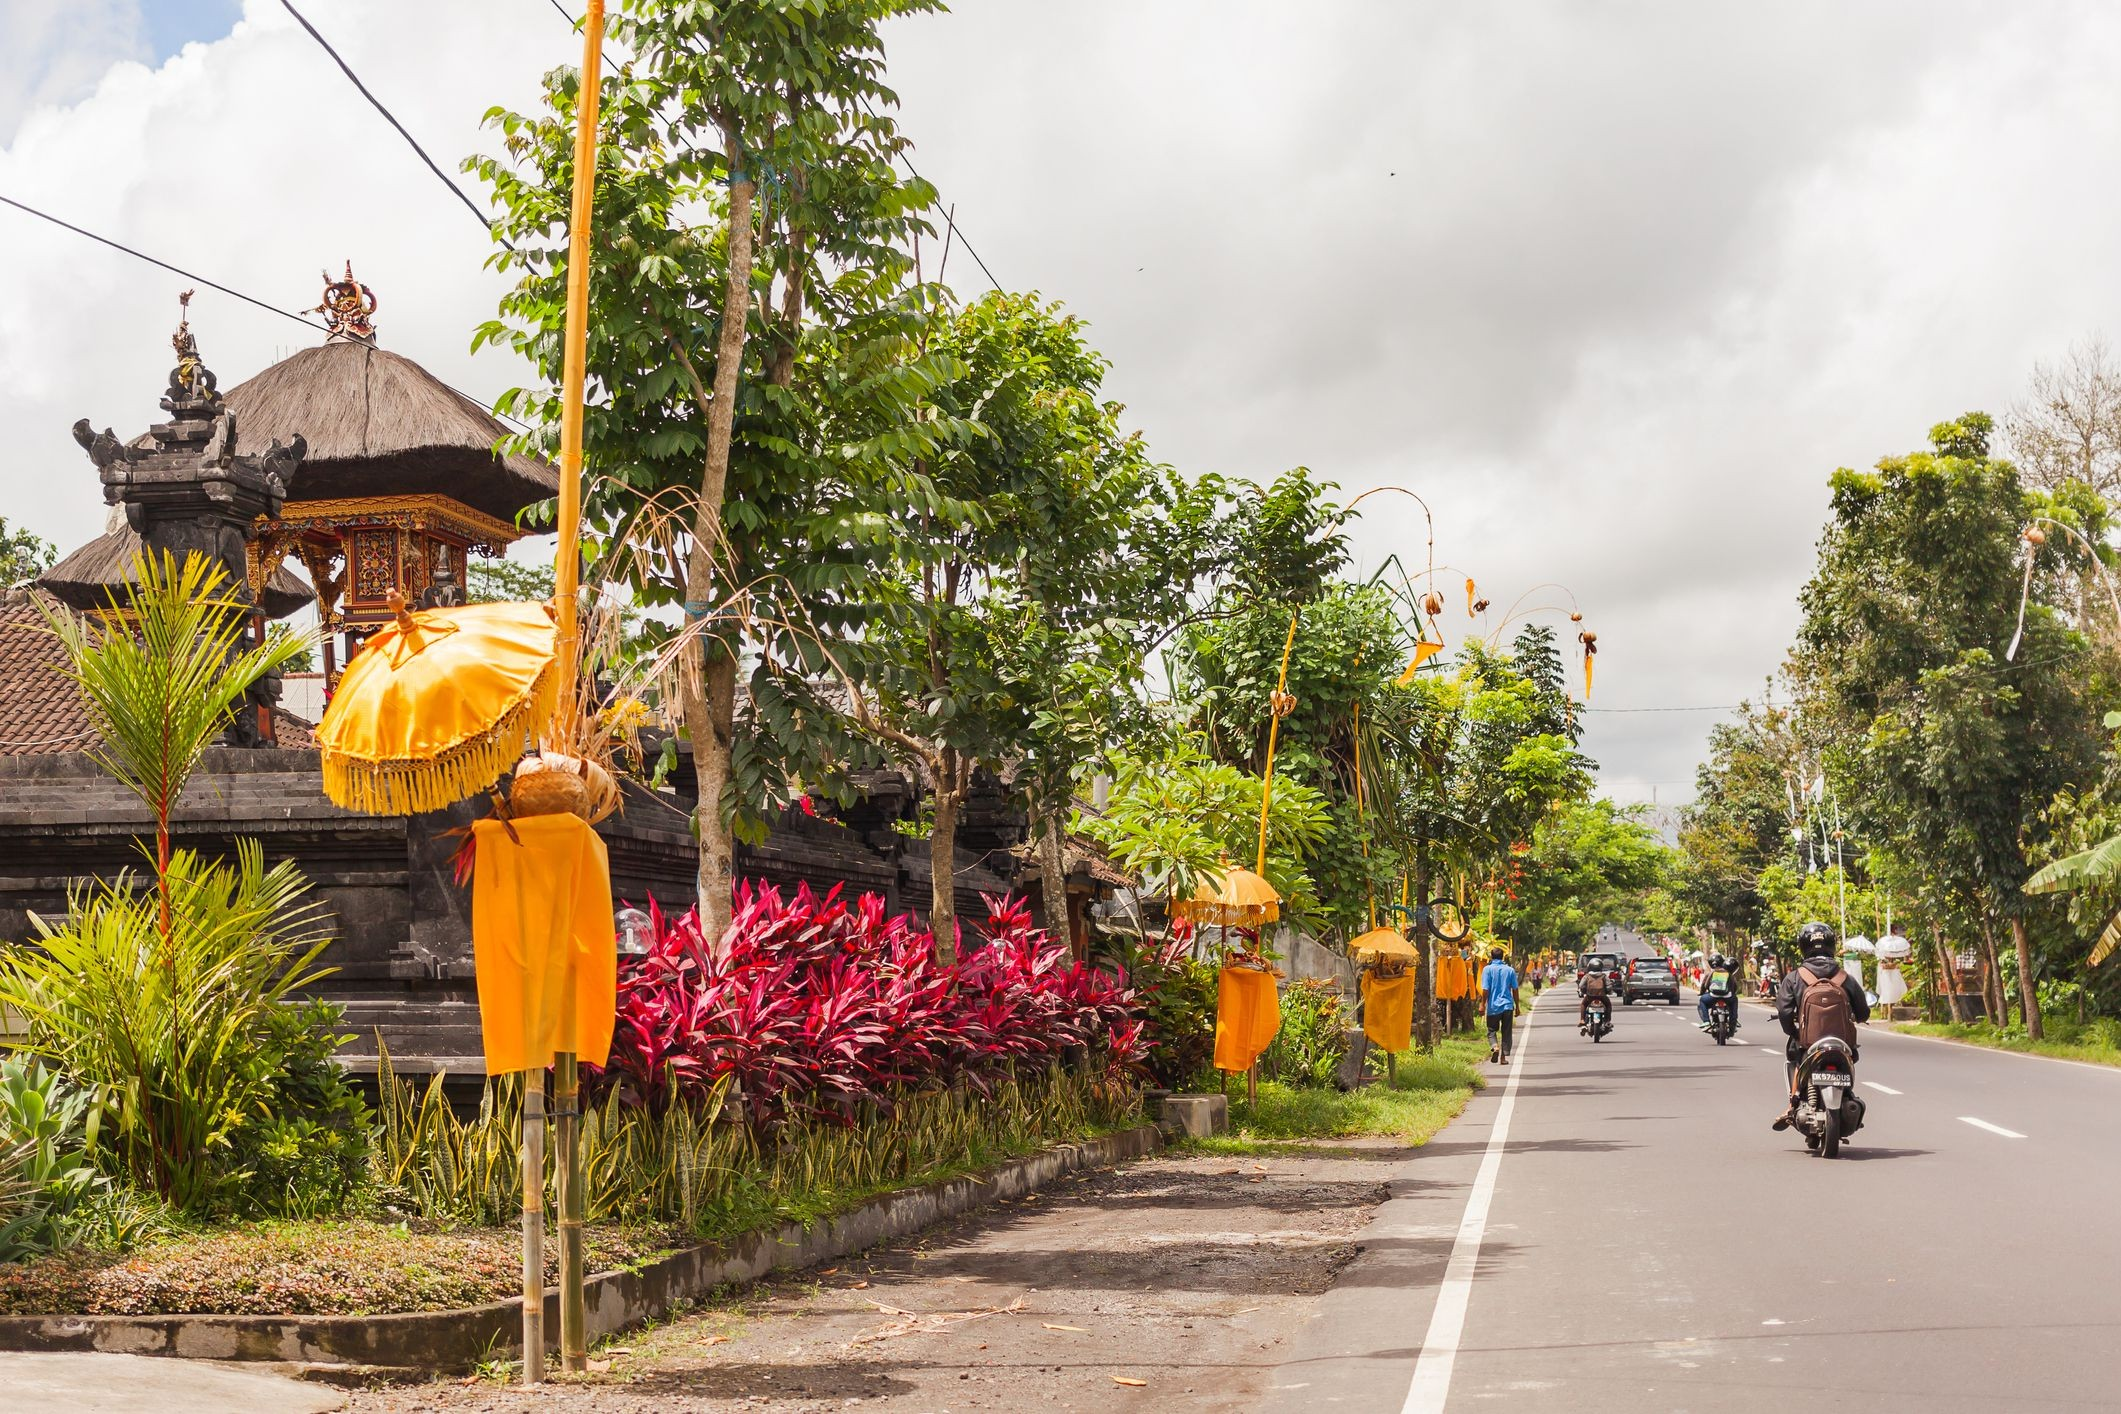 Religious decoration near houses on street Road traffic in sunny day Ubud Bali